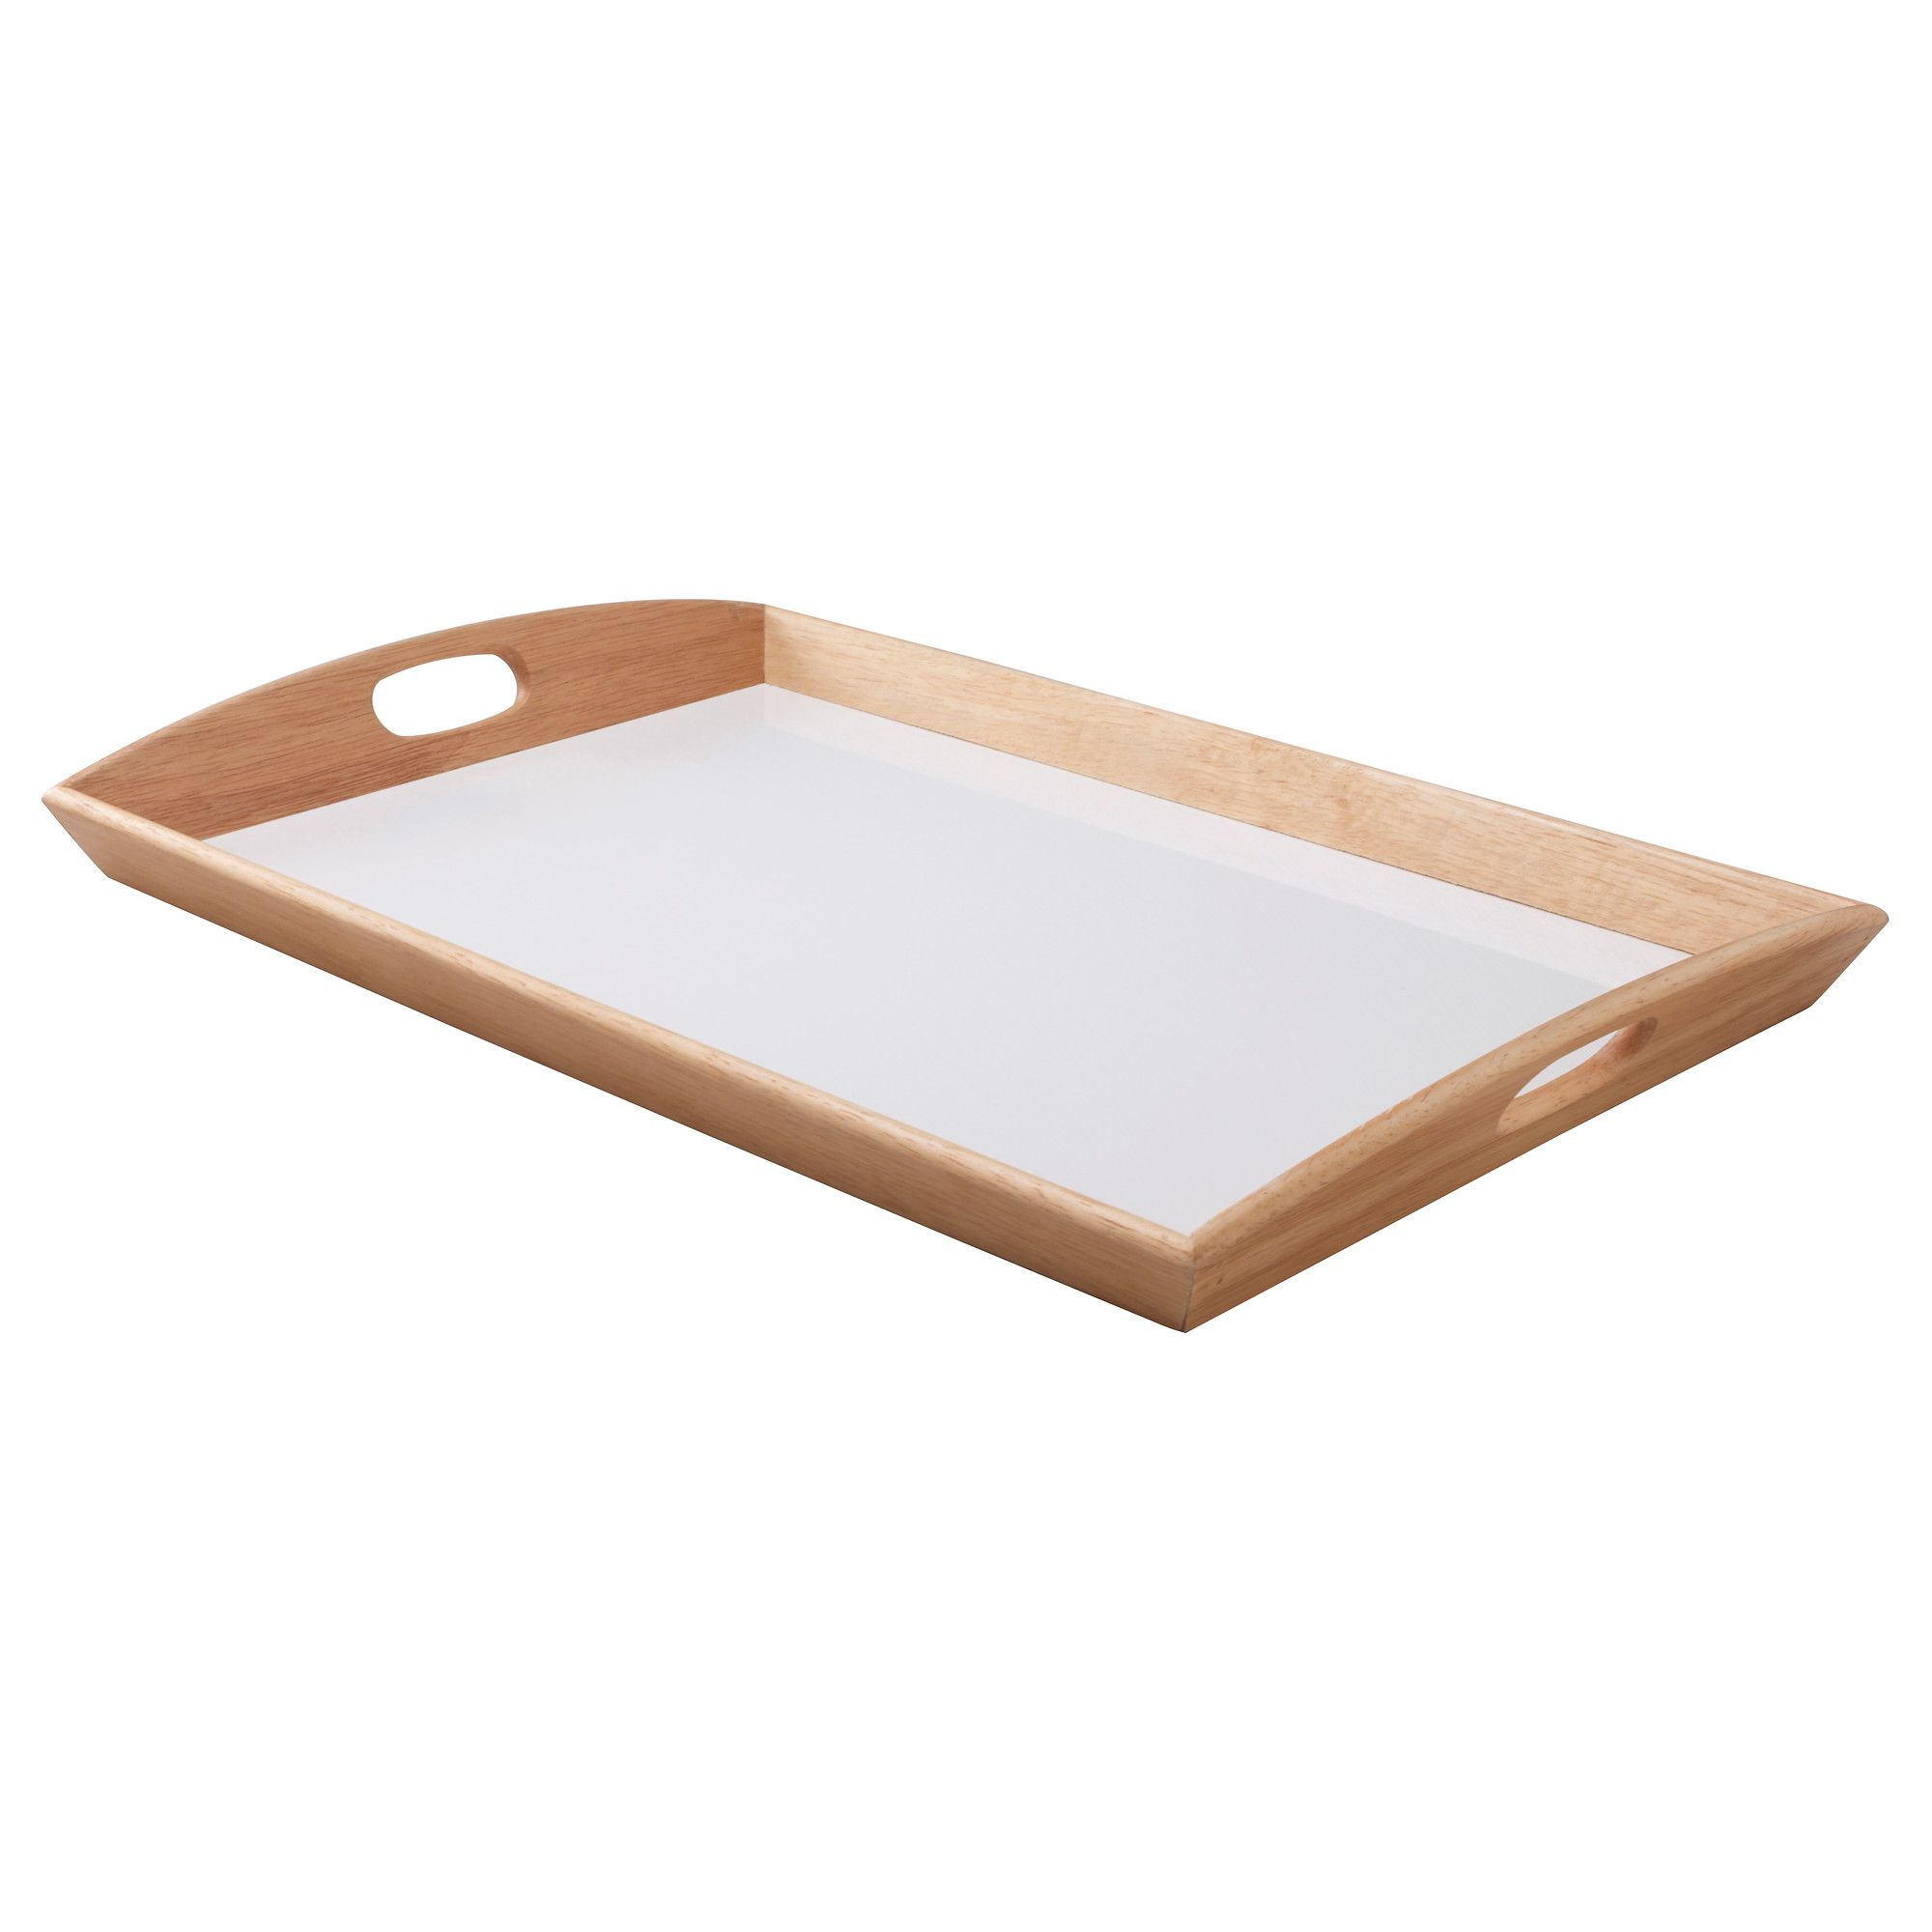 KLACK Tray, rubberwood | Trays, Living rooms and Ikea shopping